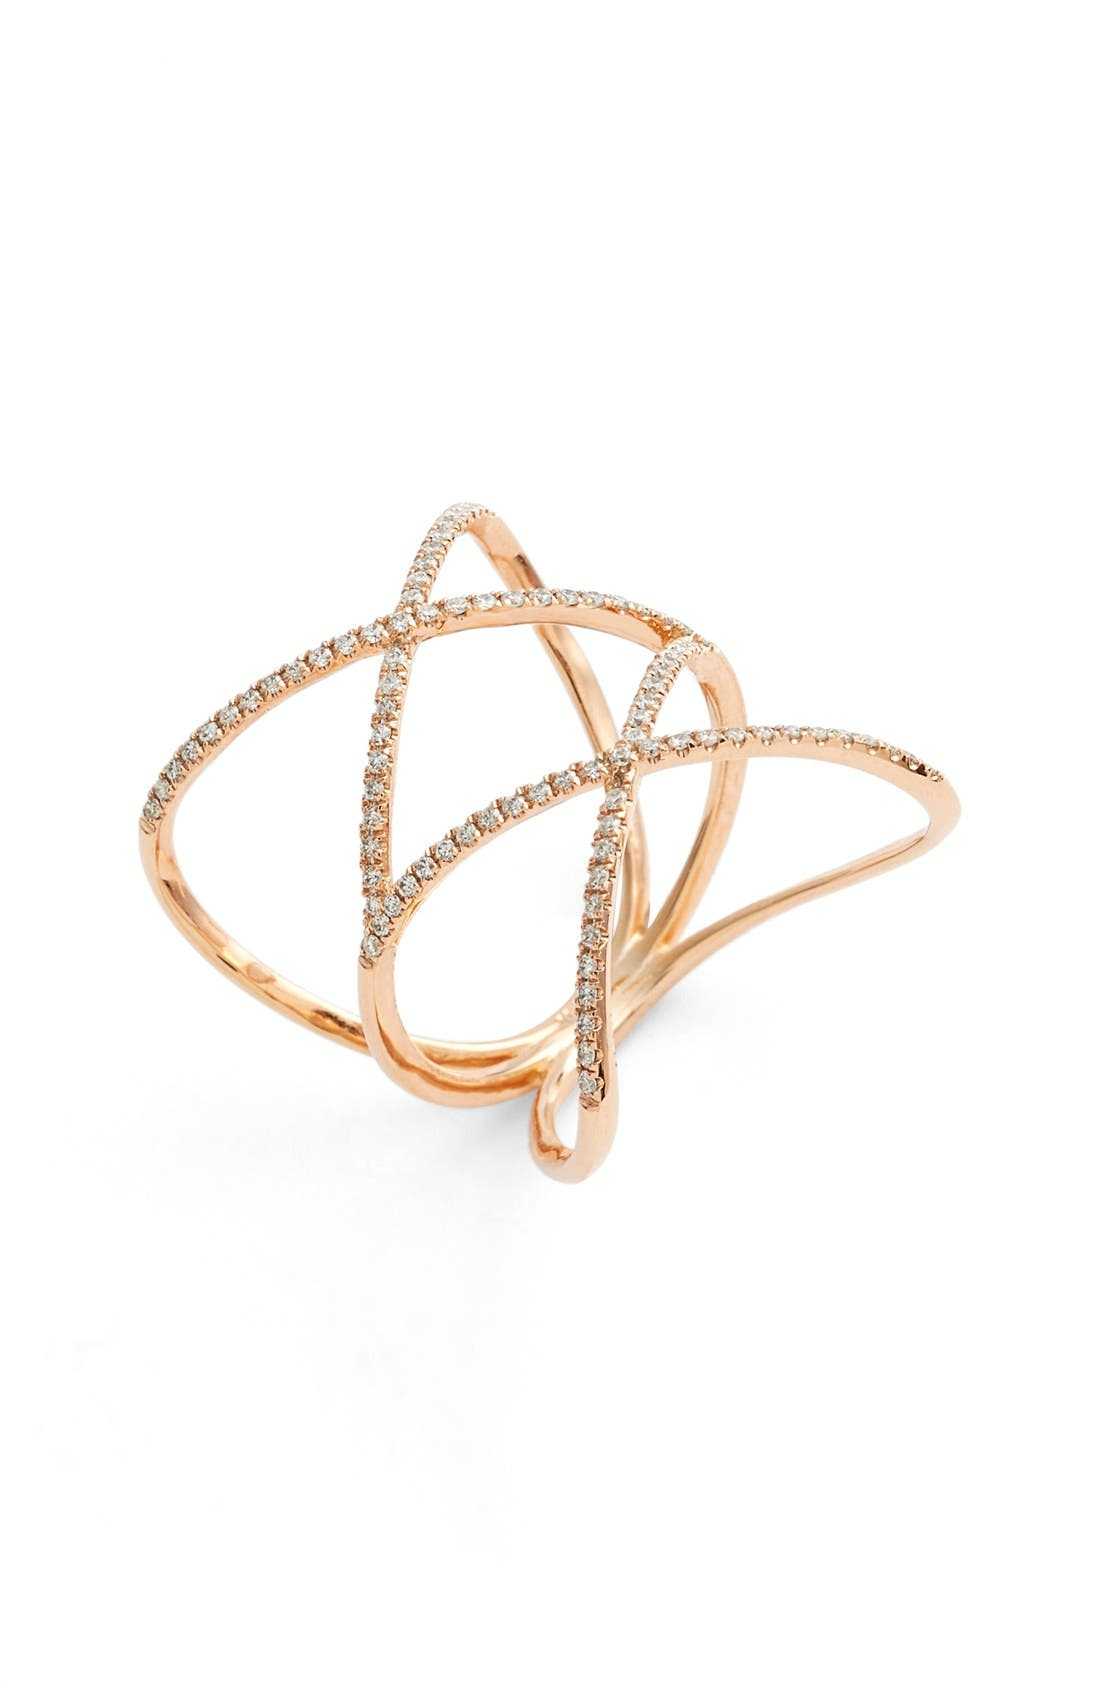 Alternate Image 1 Selected - Bony Levy Diamond Double Crisscross Ring (Nordstrom Exclusive)